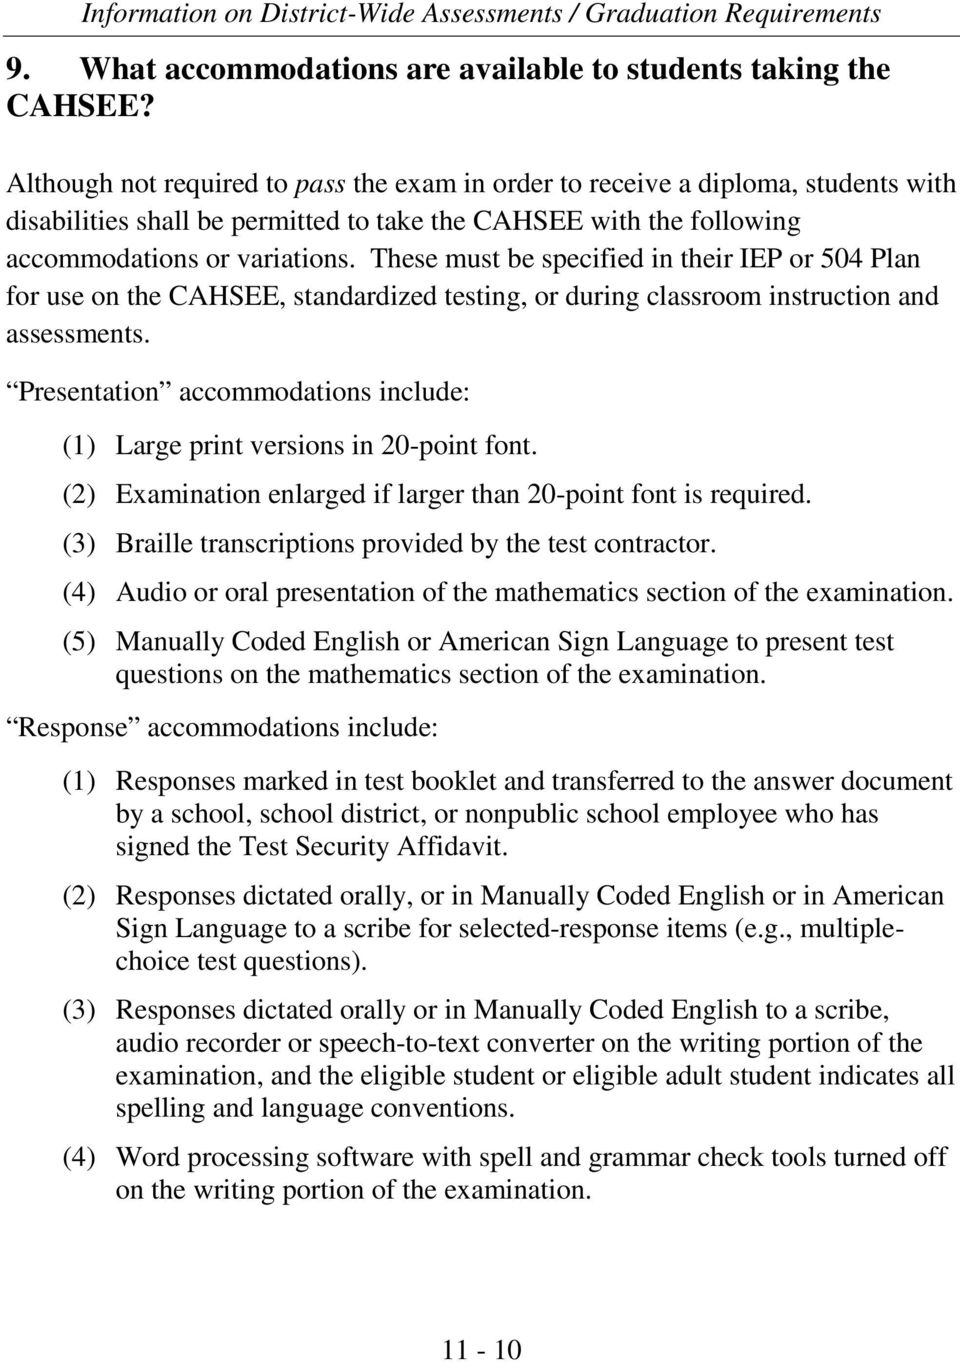 These must be specified in their IEP or 504 Plan for use on the CAHSEE, standardized testing, or during classroom instruction and assessments.